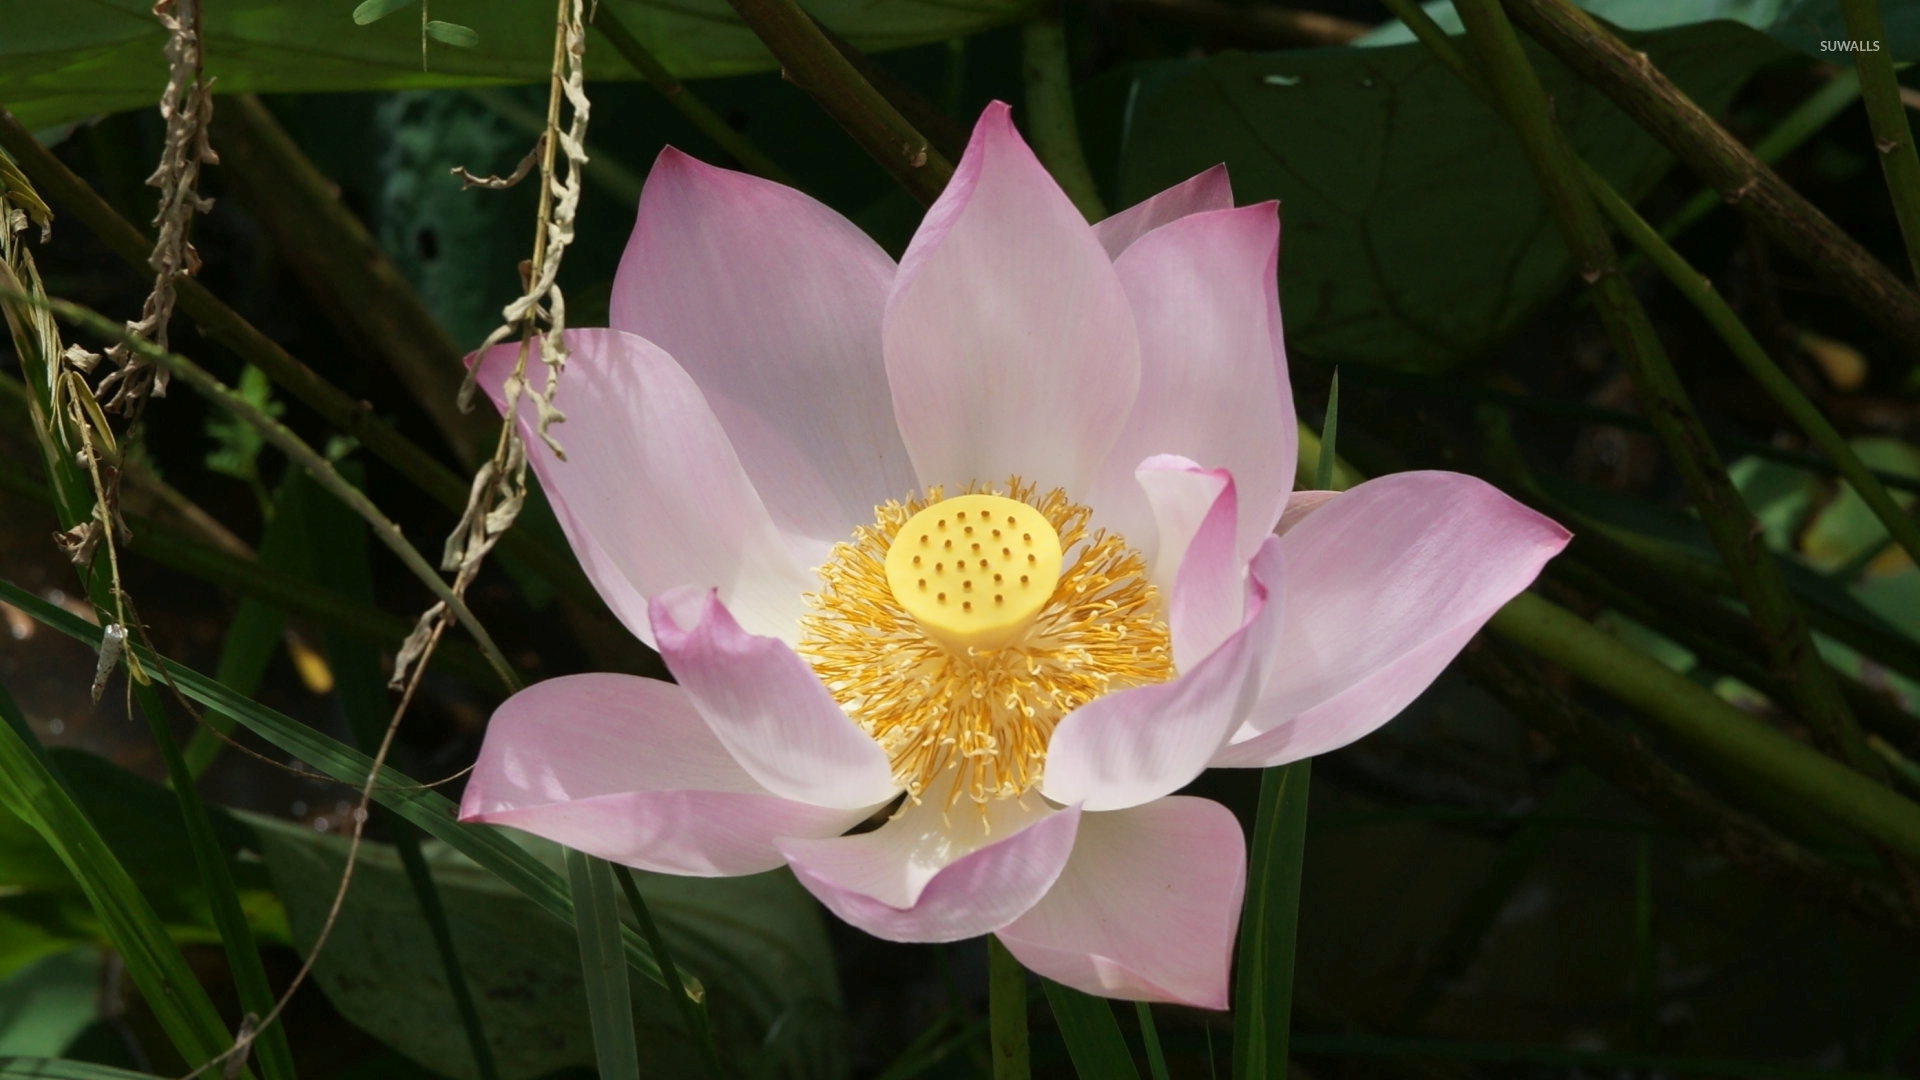 Stigma And Stamens Of A Pink Lotus Close Up Wallpaper